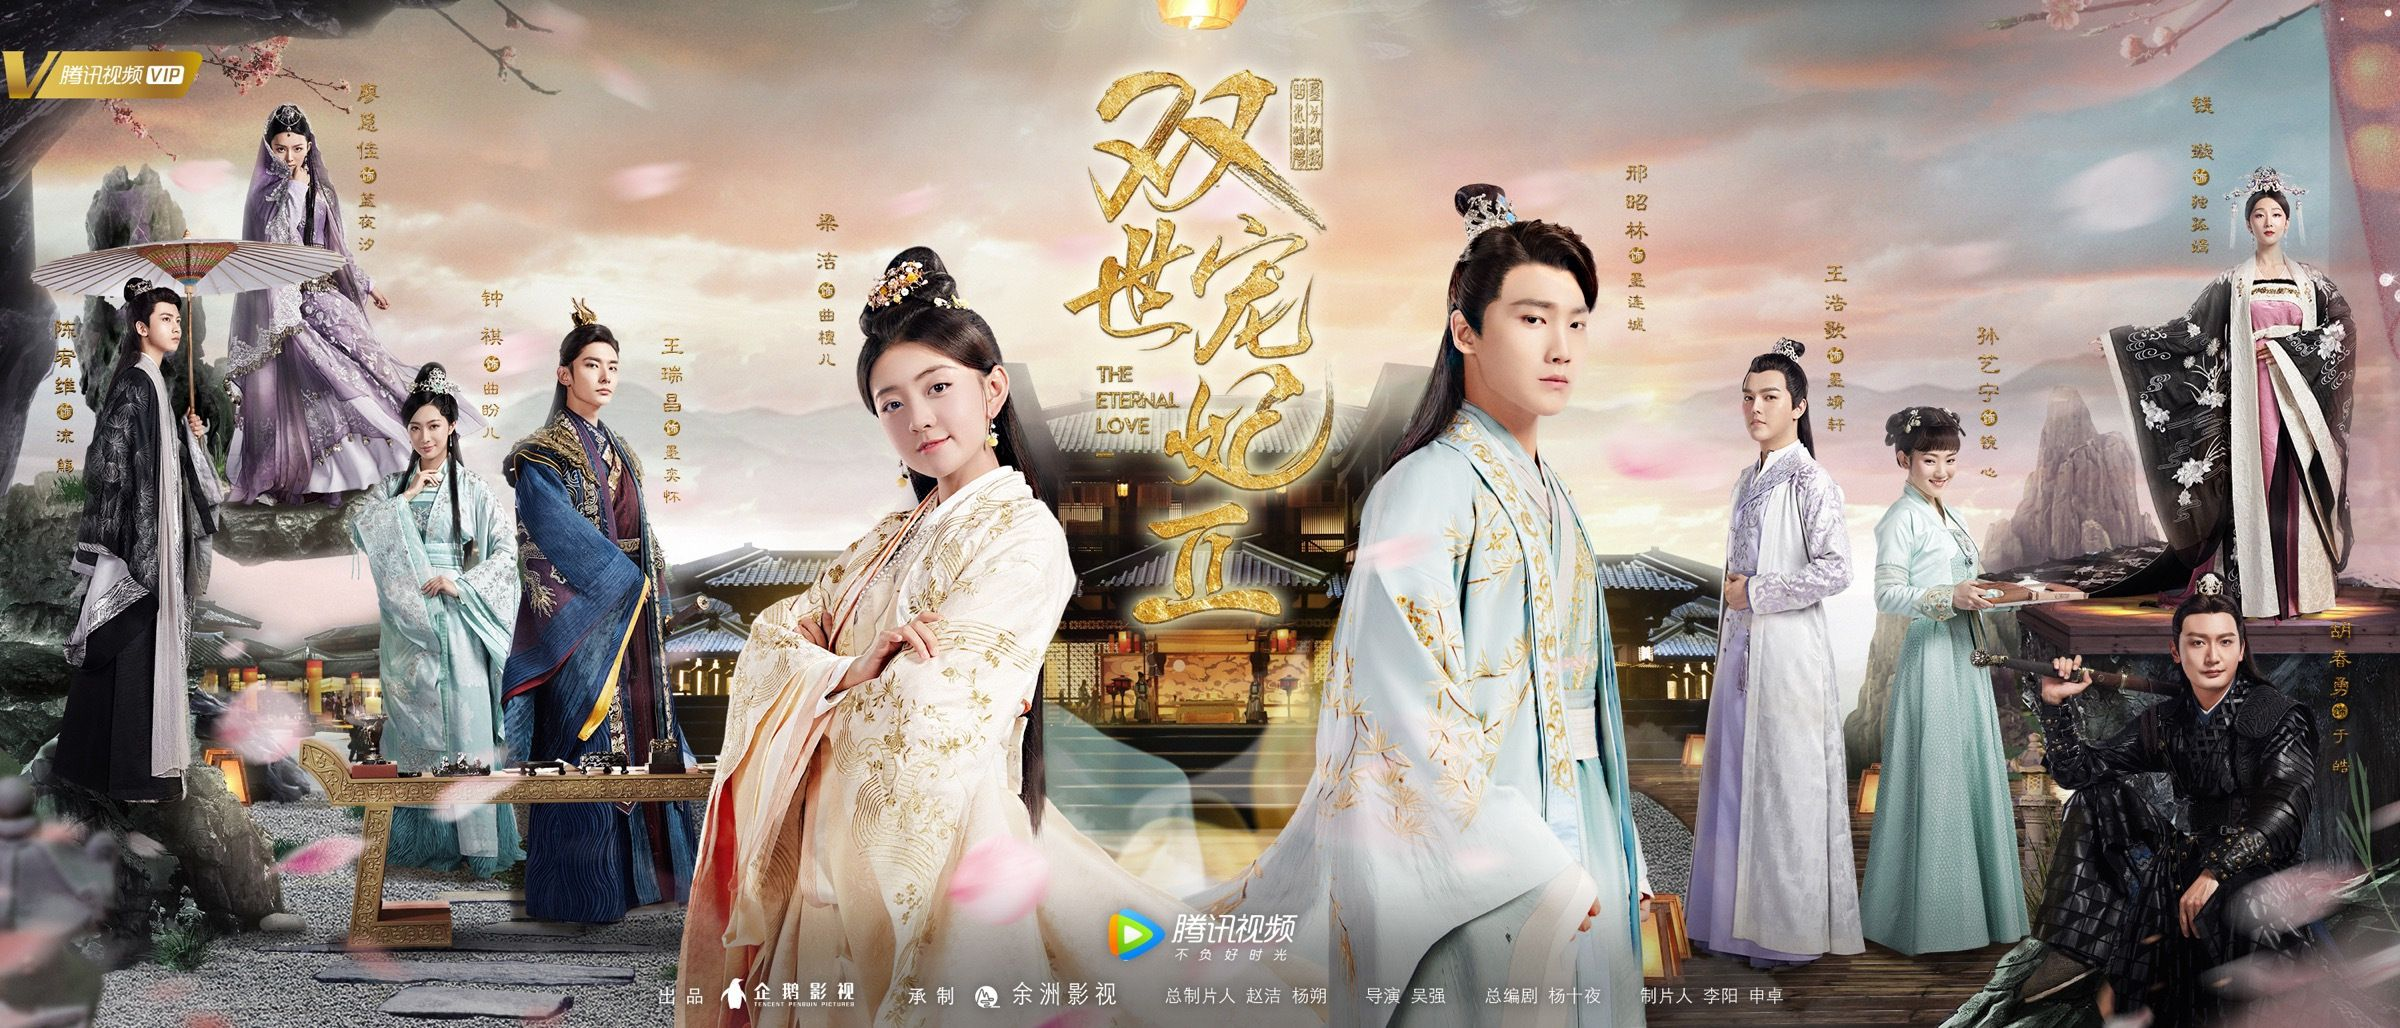 Pin by Hit Asian on Hit Asian in 2019 | Eternal love, Dramas